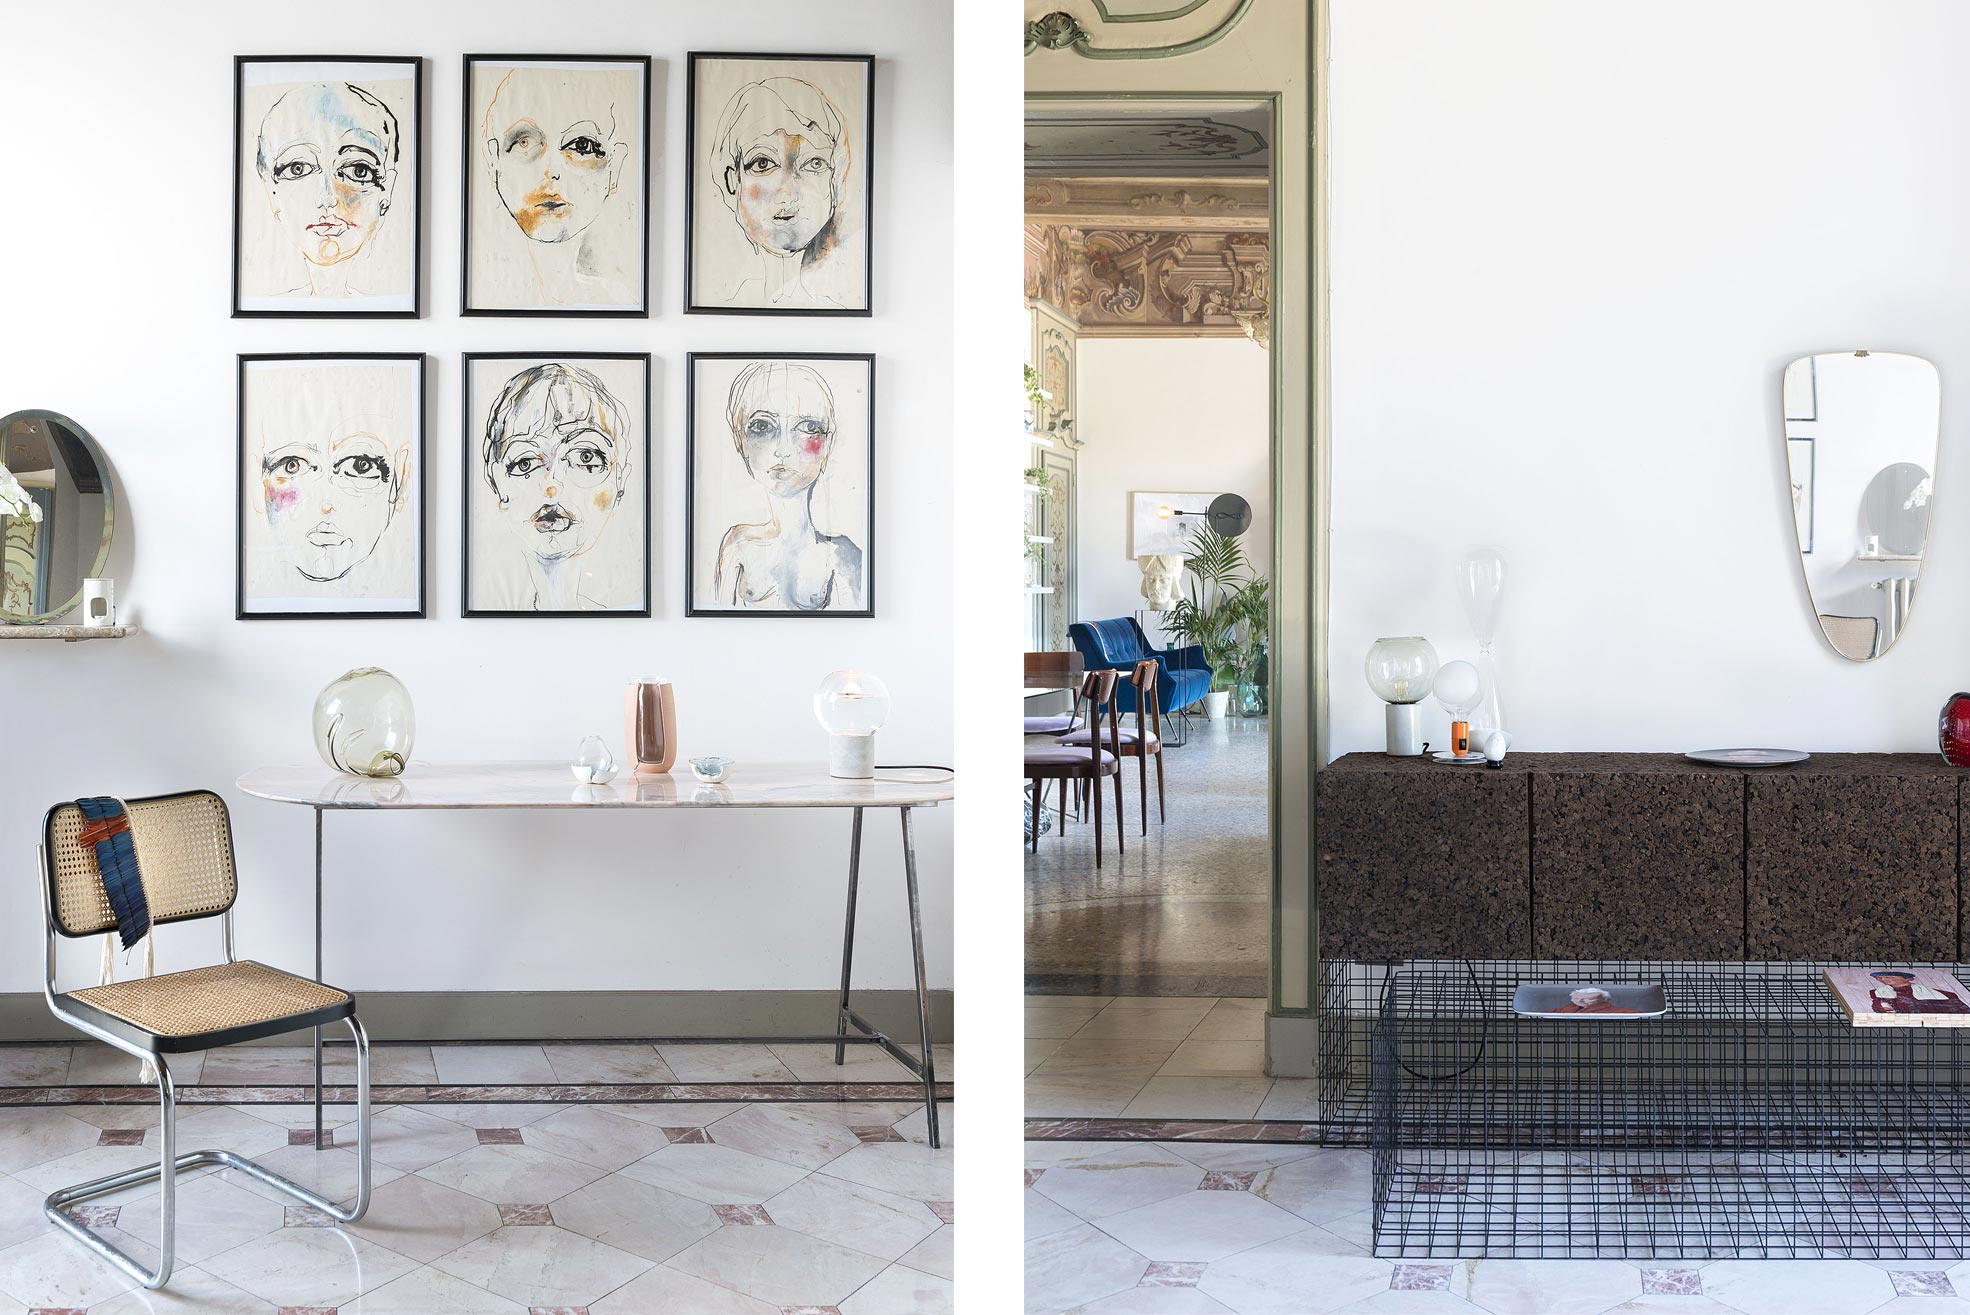 Artworks in Casa Canvas Photographer Maria Teresa Furnari